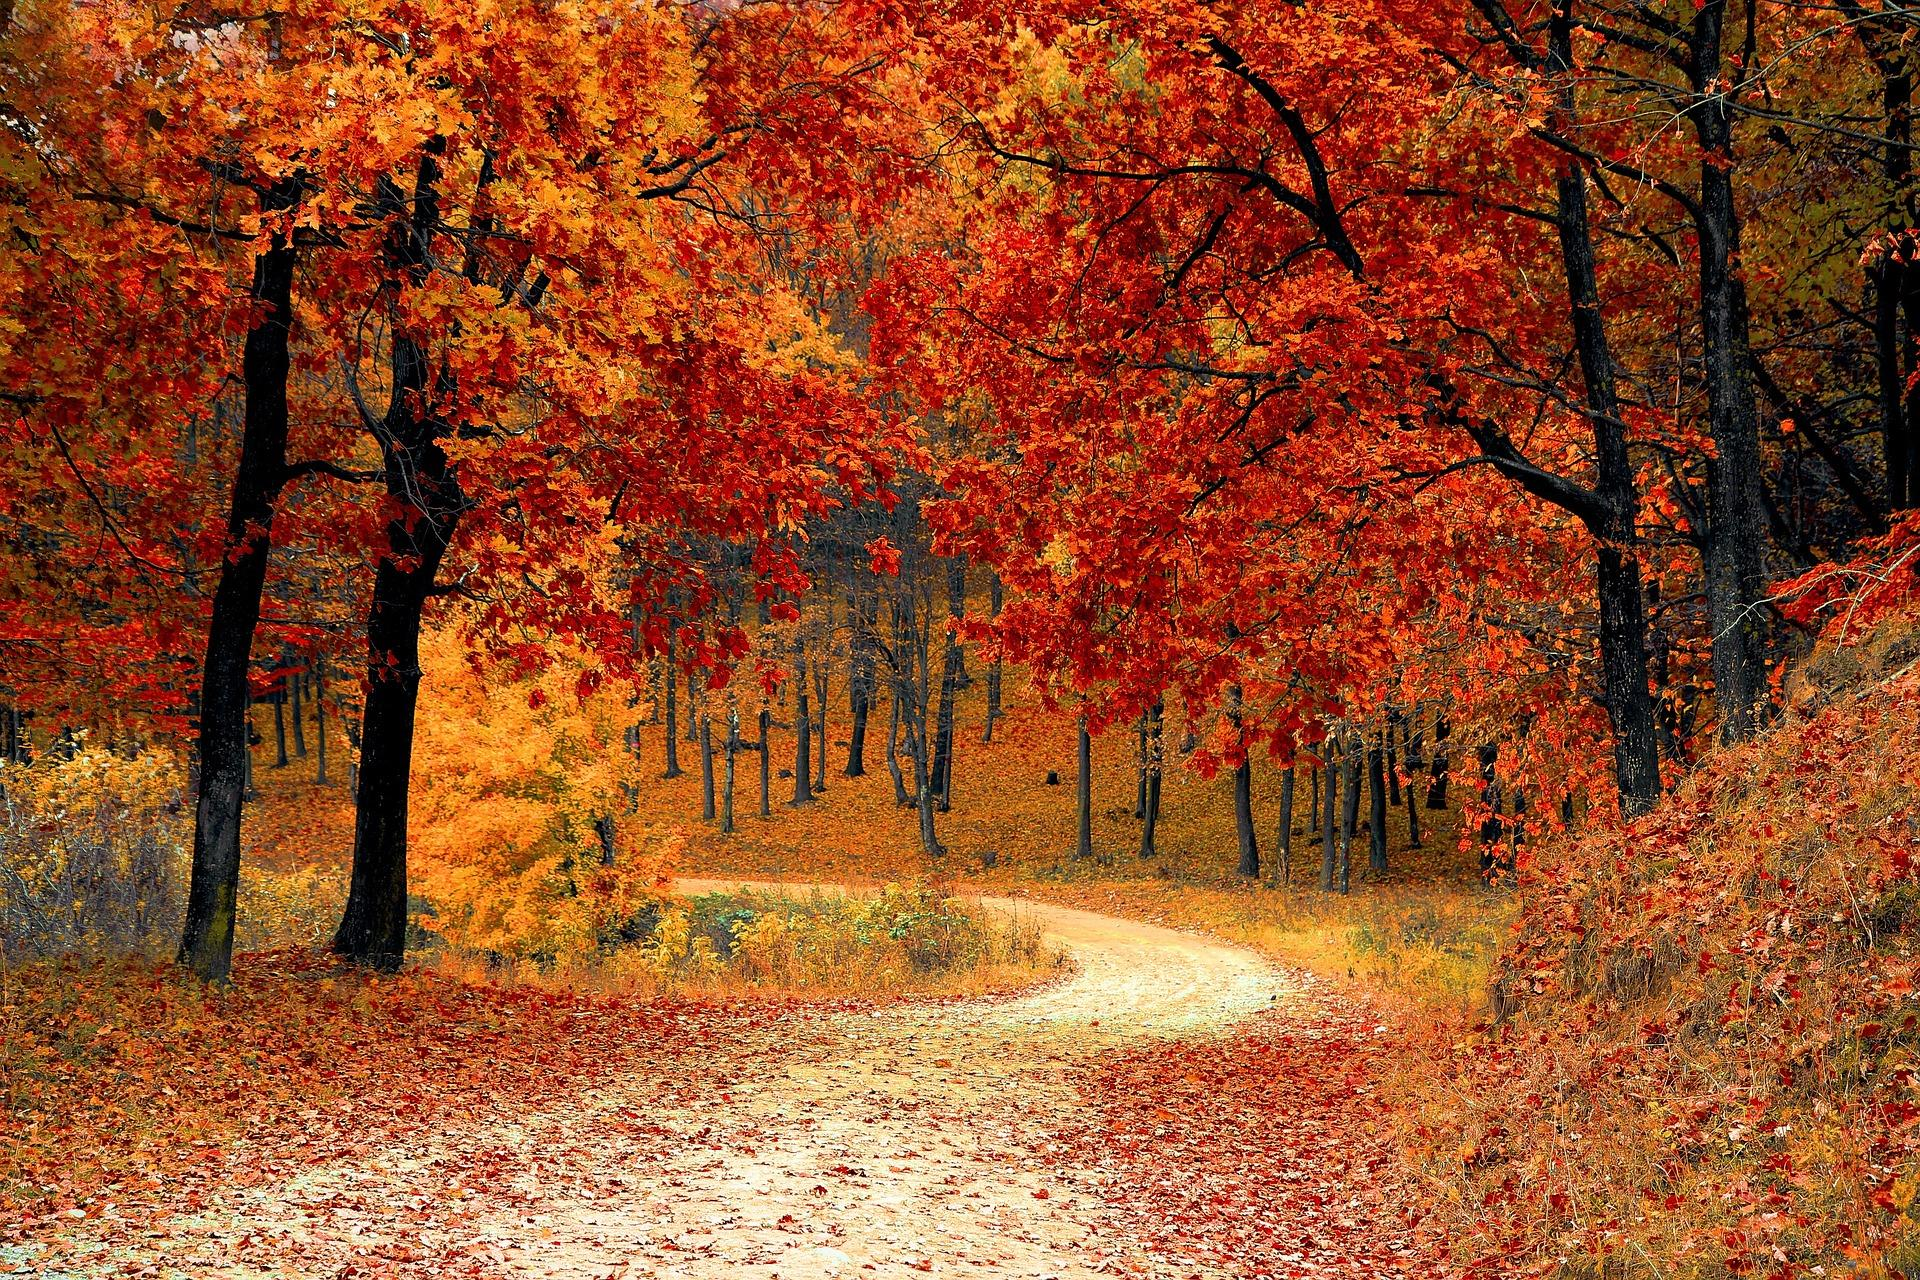 Where to Find Fall Foliage in Kentucky